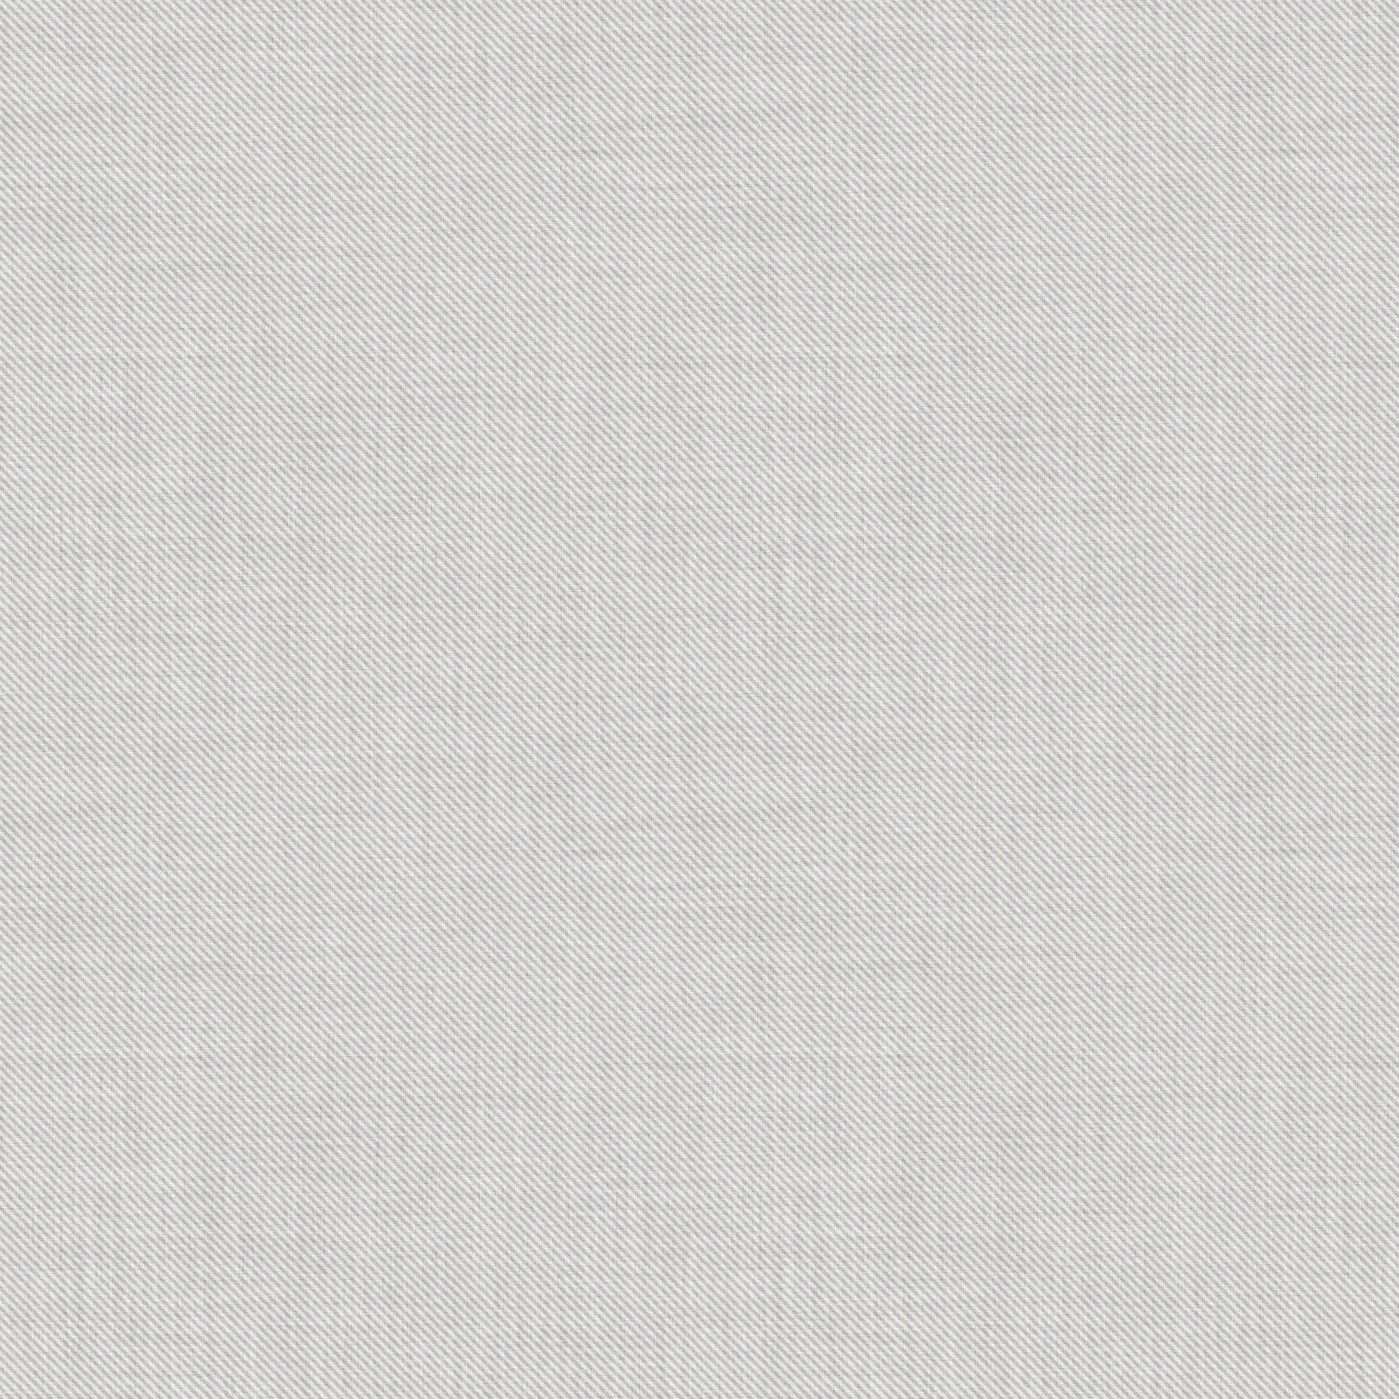 texturise: Seamless Grey Fabric Texture   Normal Map | Textures ... for Linen Fabric Textures  288gtk